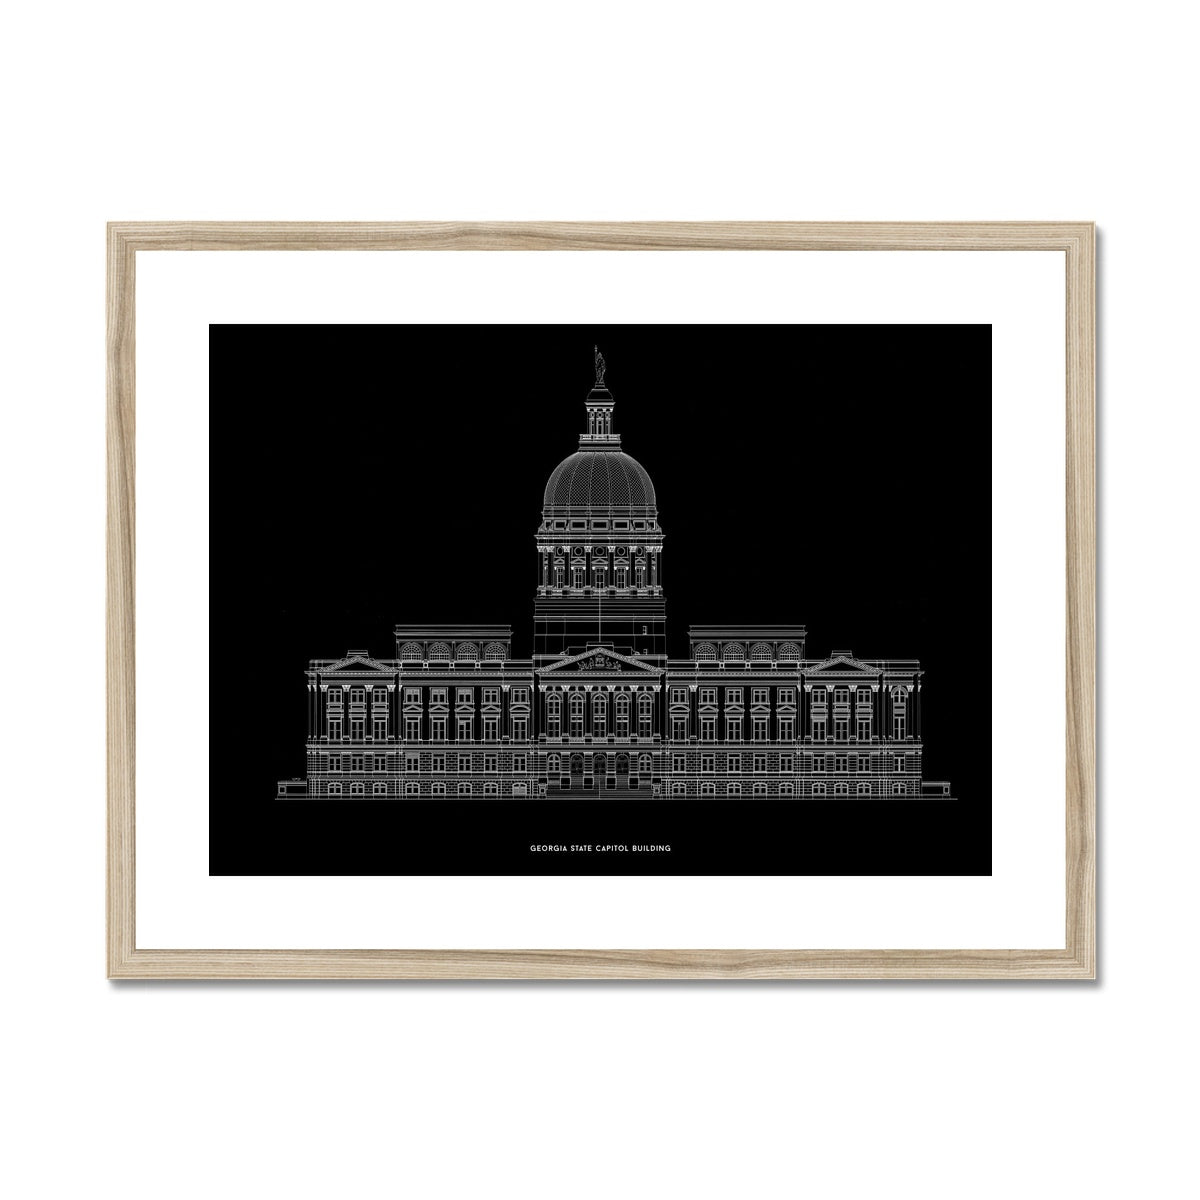 The Georgia State Capitol Building - West Elevation - Black -  Framed & Mounted Print